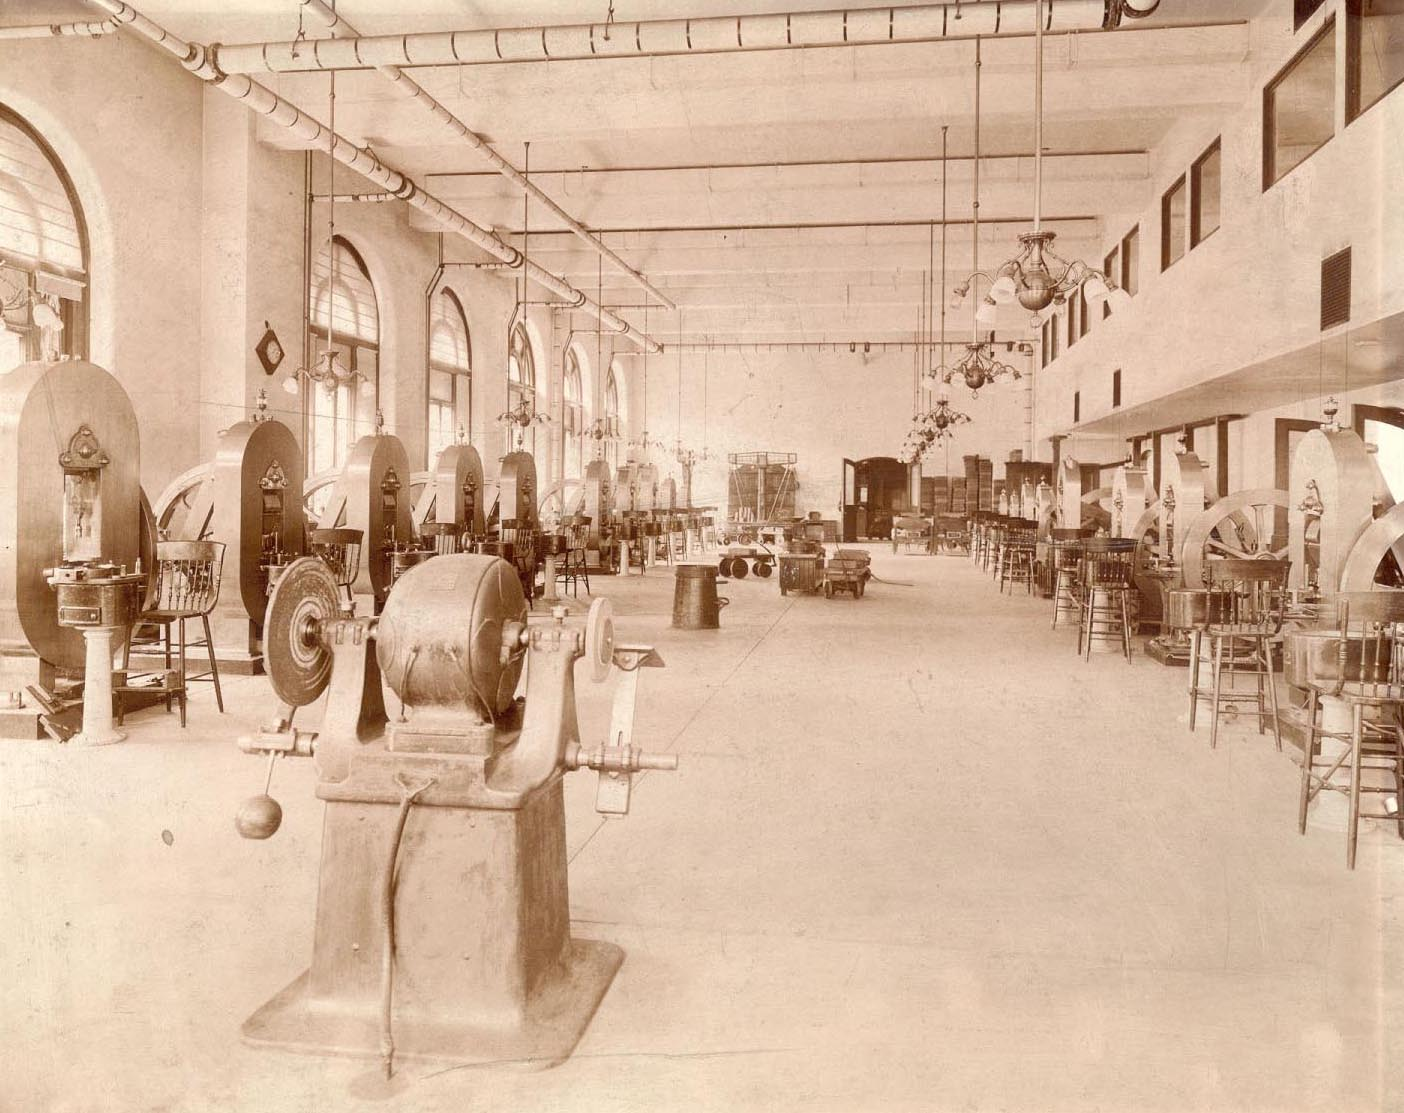 Coining Room at Philadelphia Mint, 1903 – The Coining Room at the Philadelphia Mint was a large room with a steam engine at one end and coin presses along the edges.